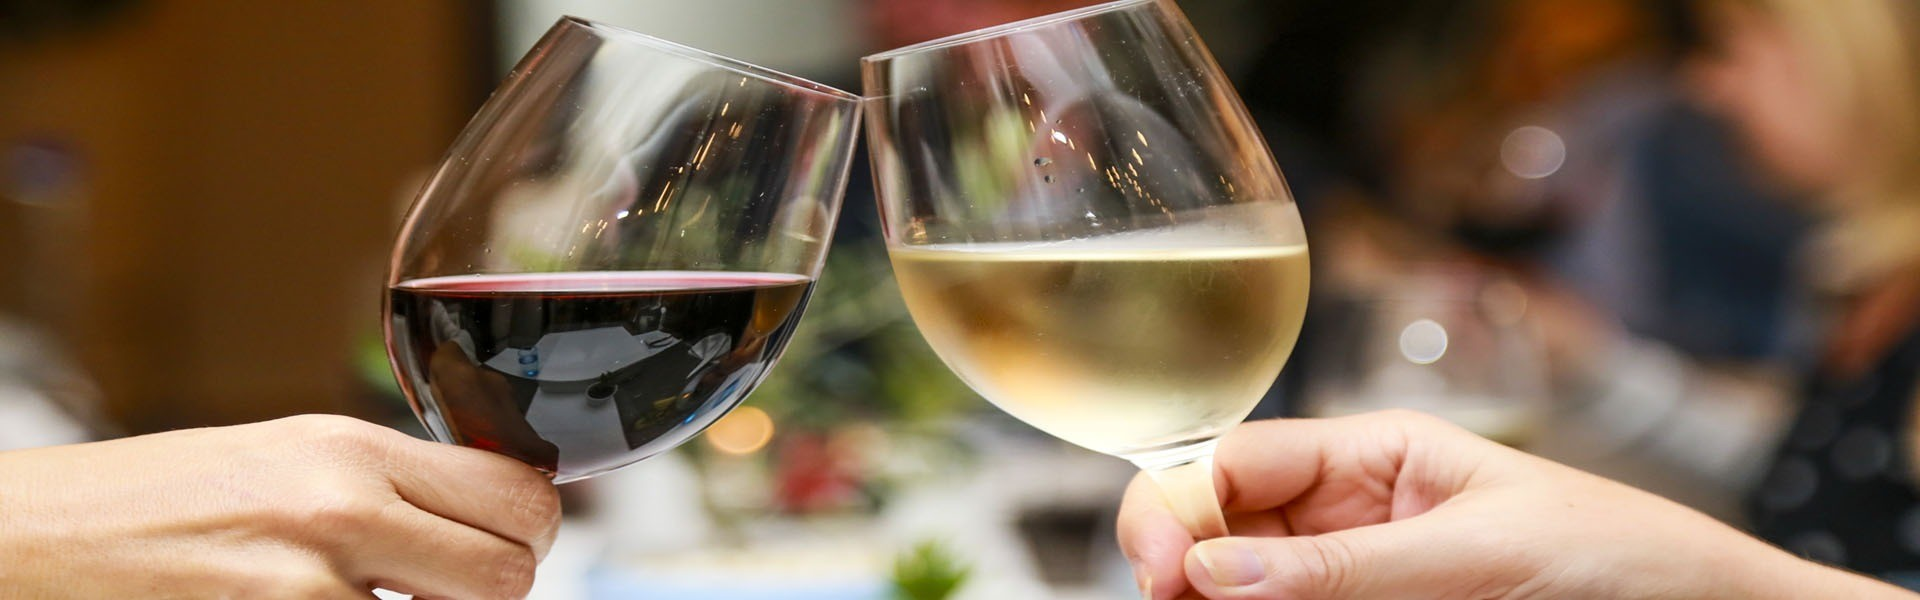 Wine tour in Israel and Palestine